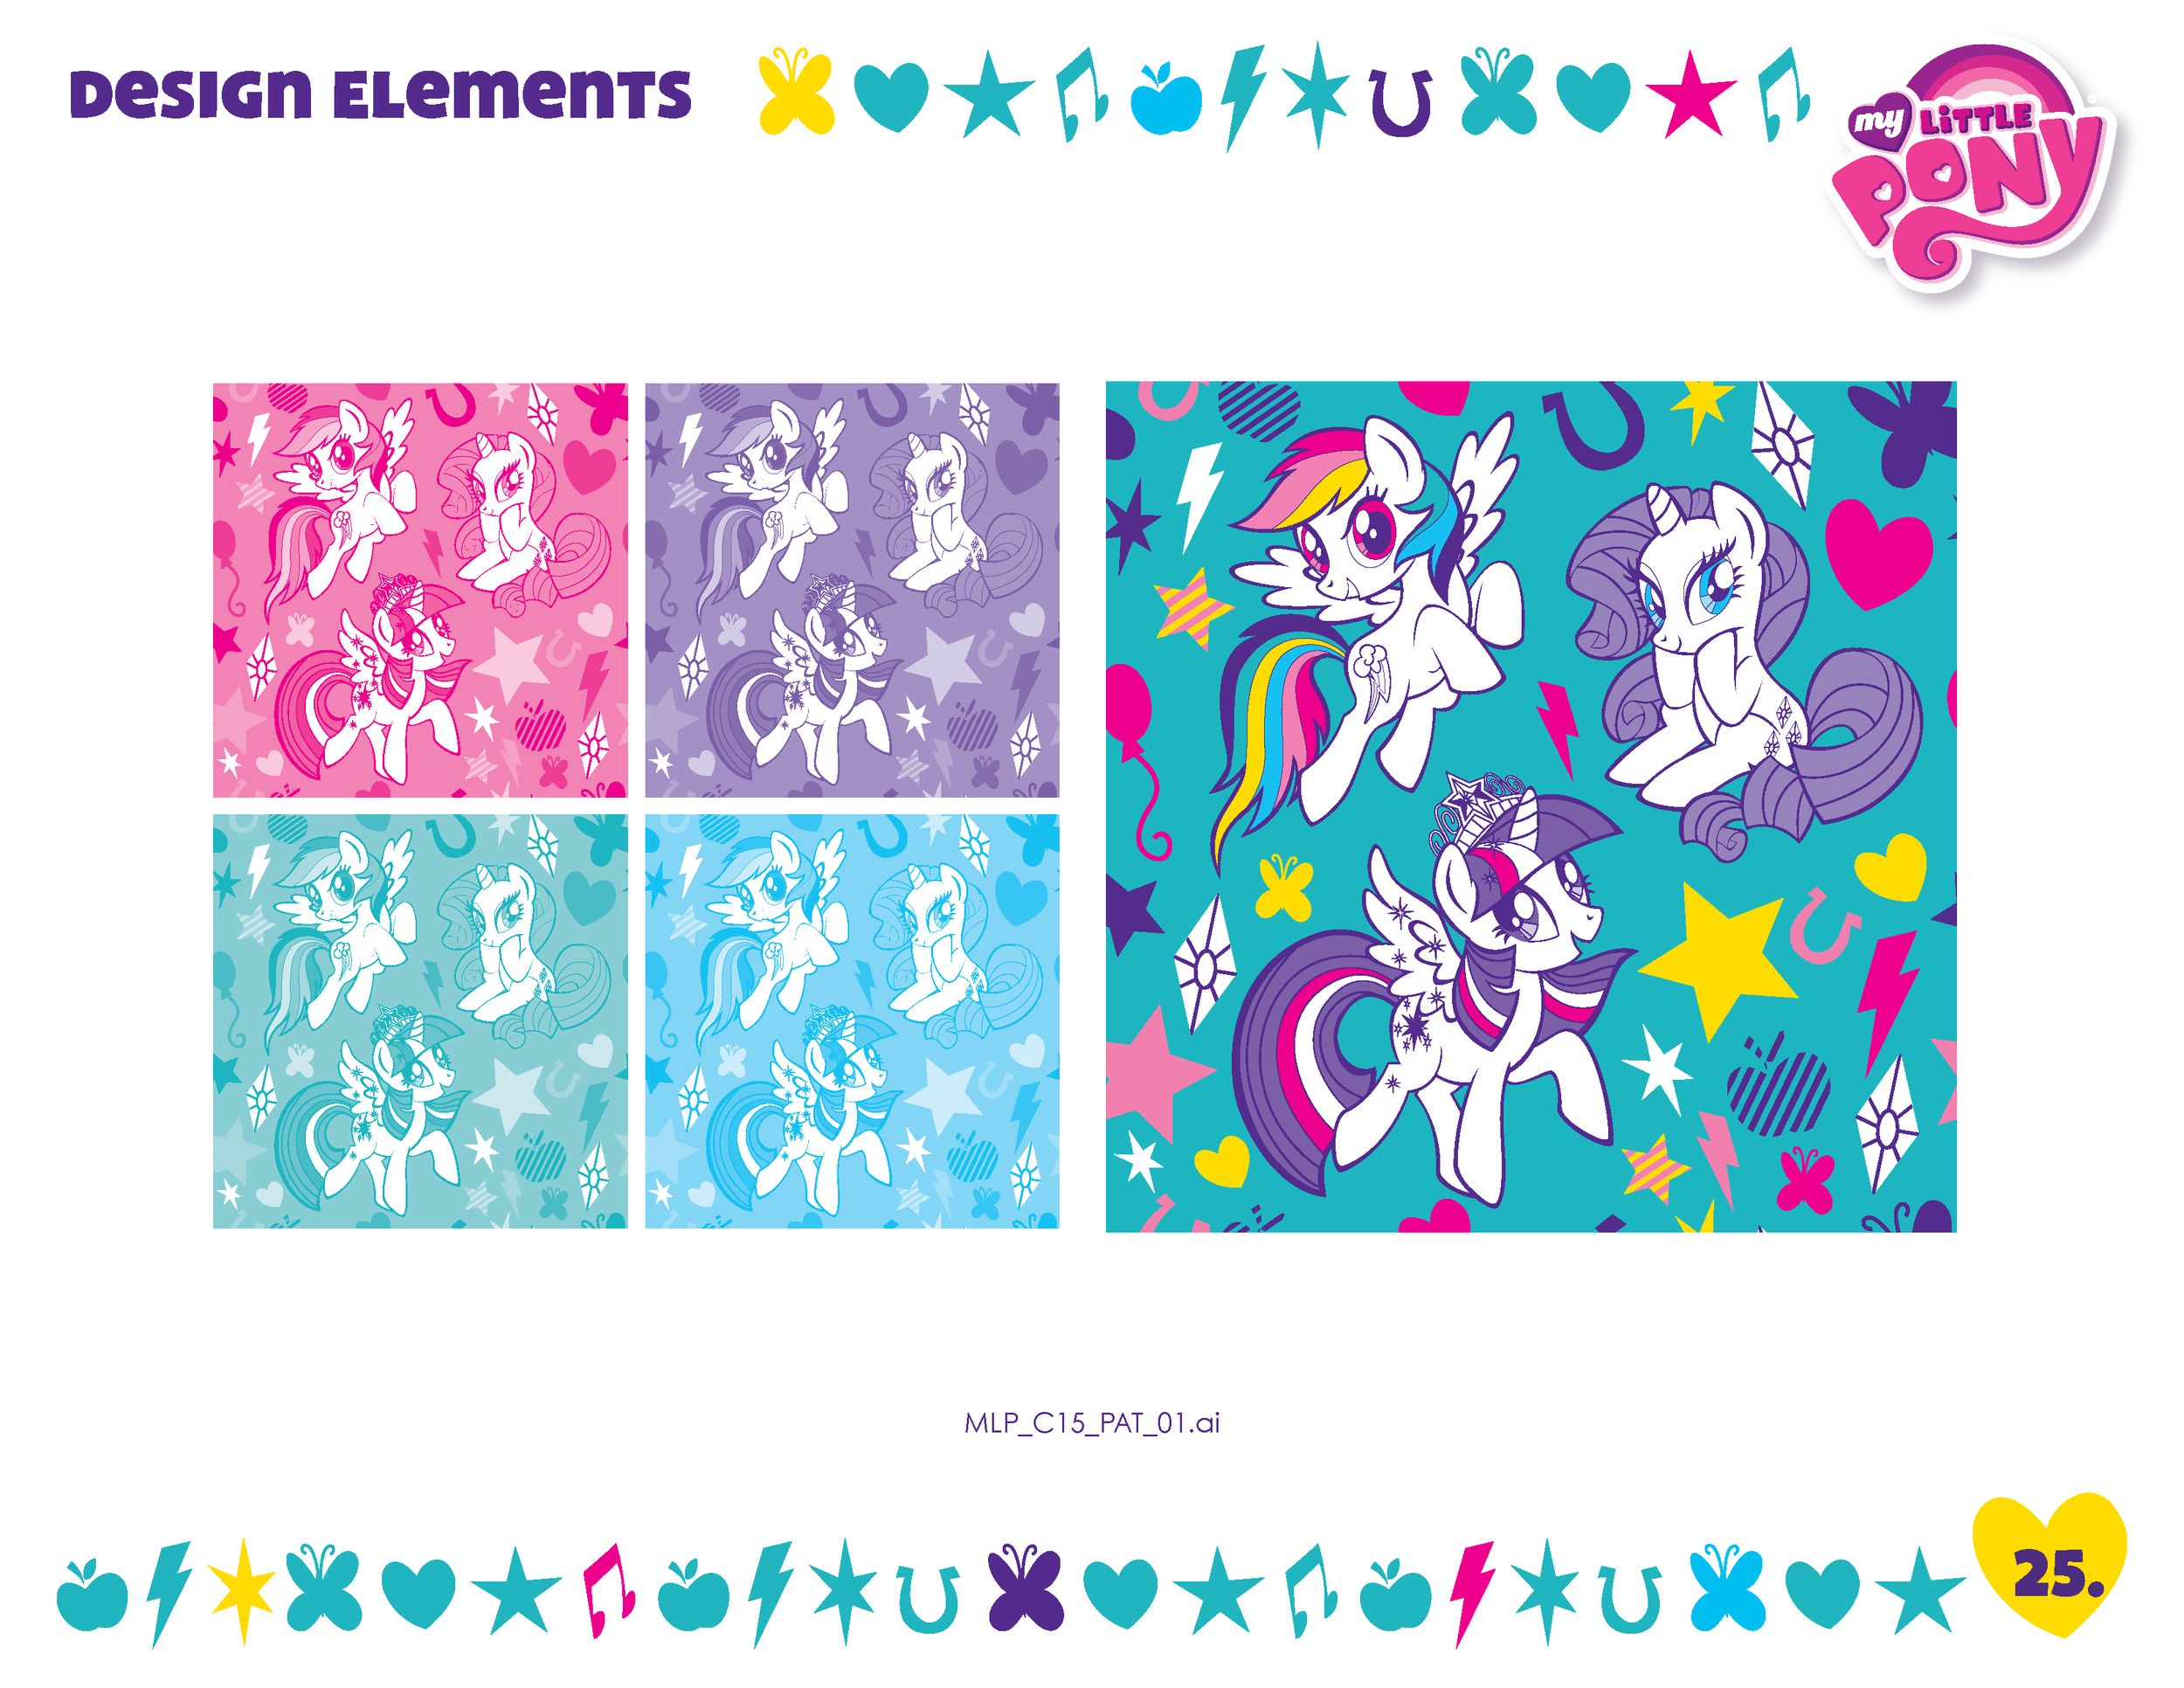 MLP Cutie Mark Core SS15 Style Guide_Page_25.png